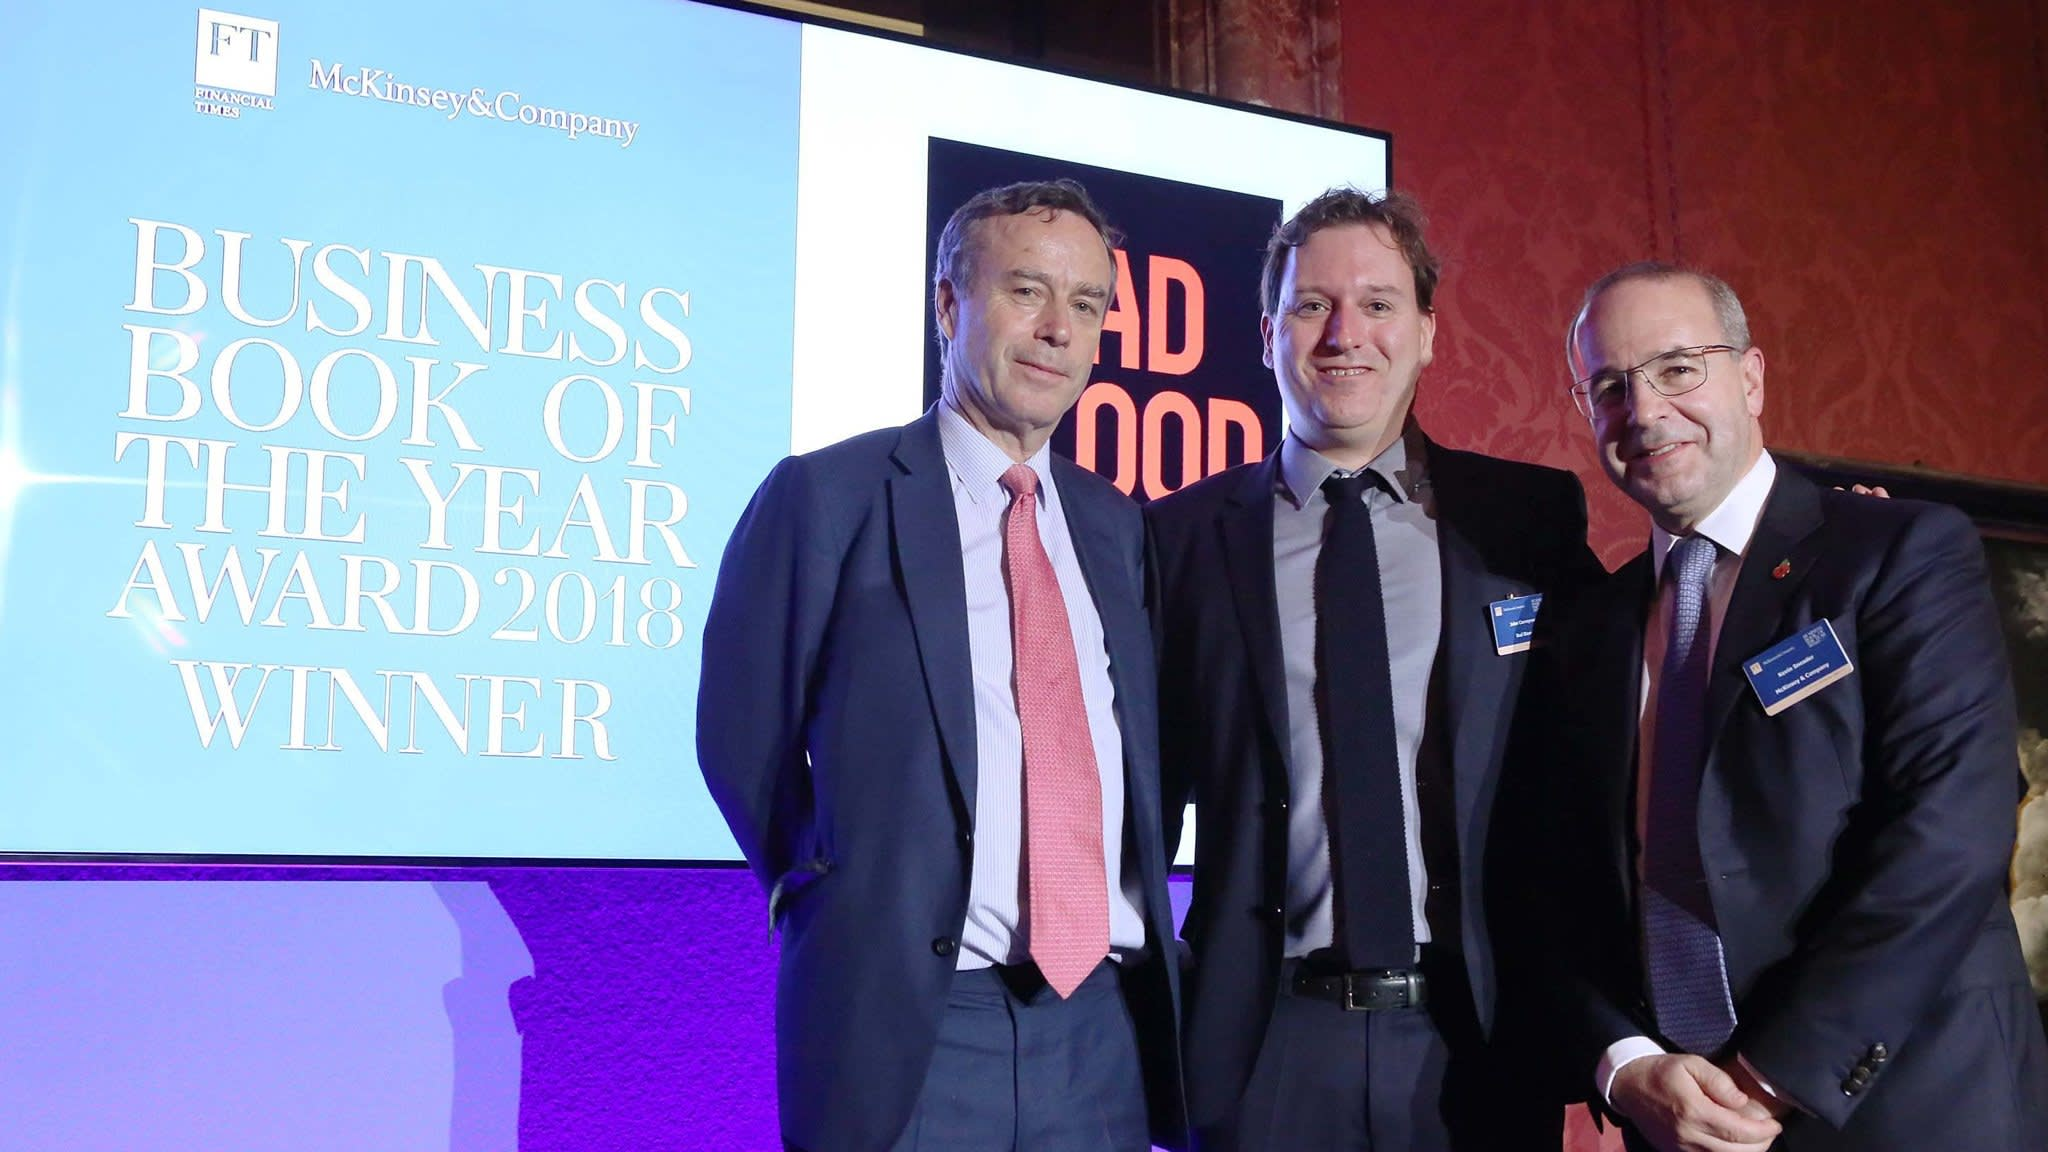 'Bad Blood' wins the FT and McKinsey Business Book of 2018